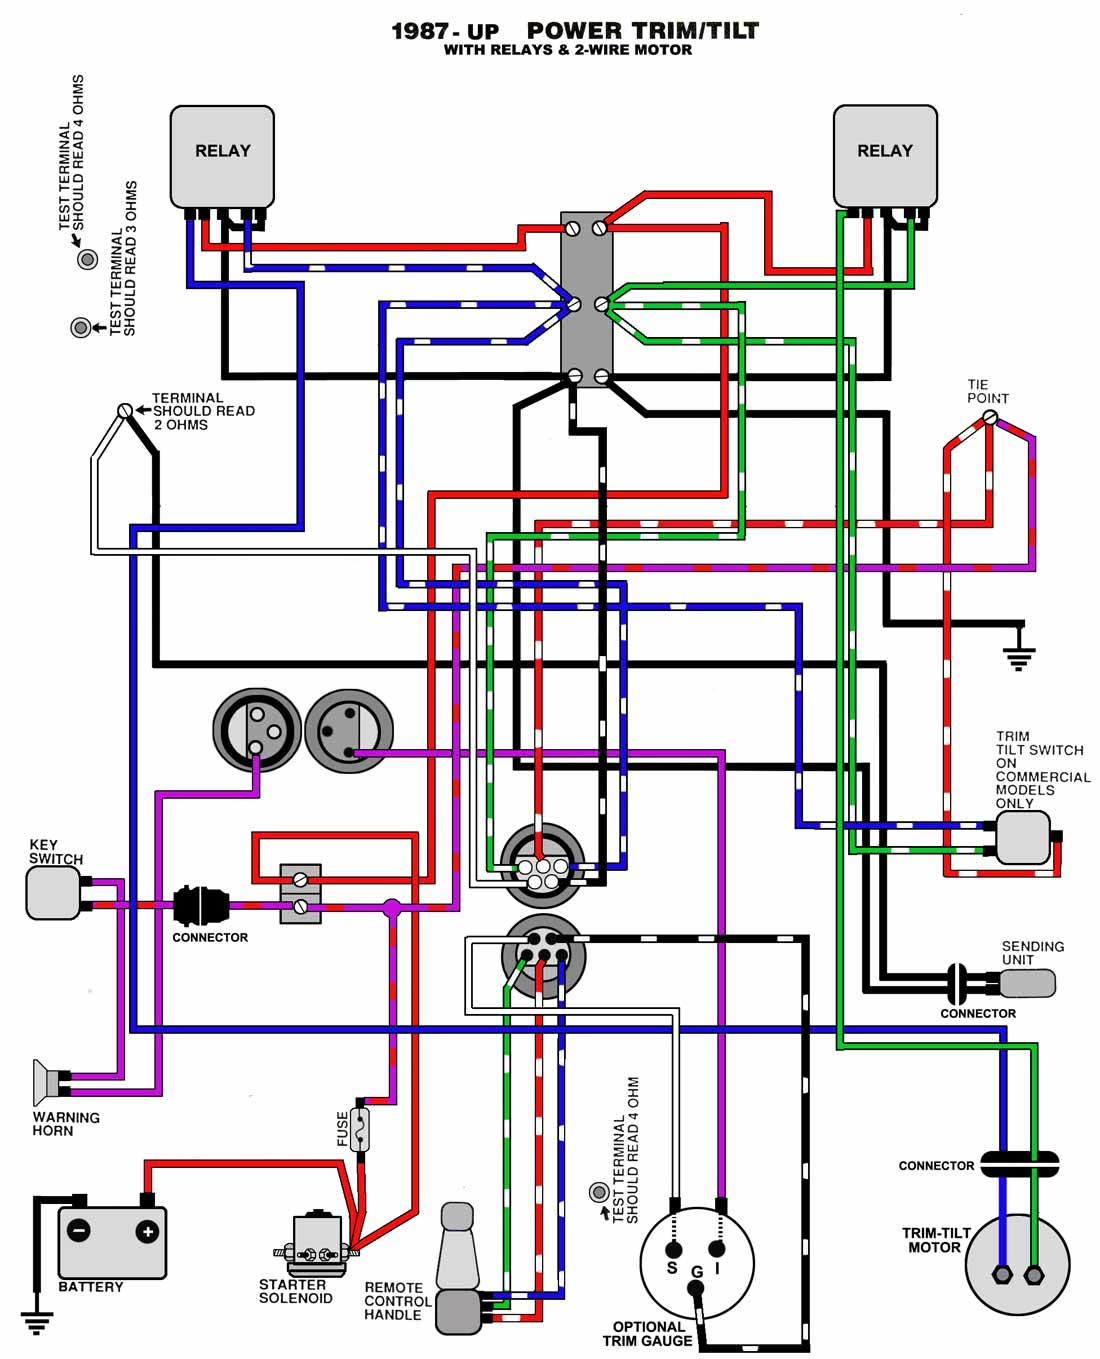 TnT_87_UP mastertech marine evinrude johnson outboard wiring diagrams evinrude key switch wiring diagram at alyssarenee.co